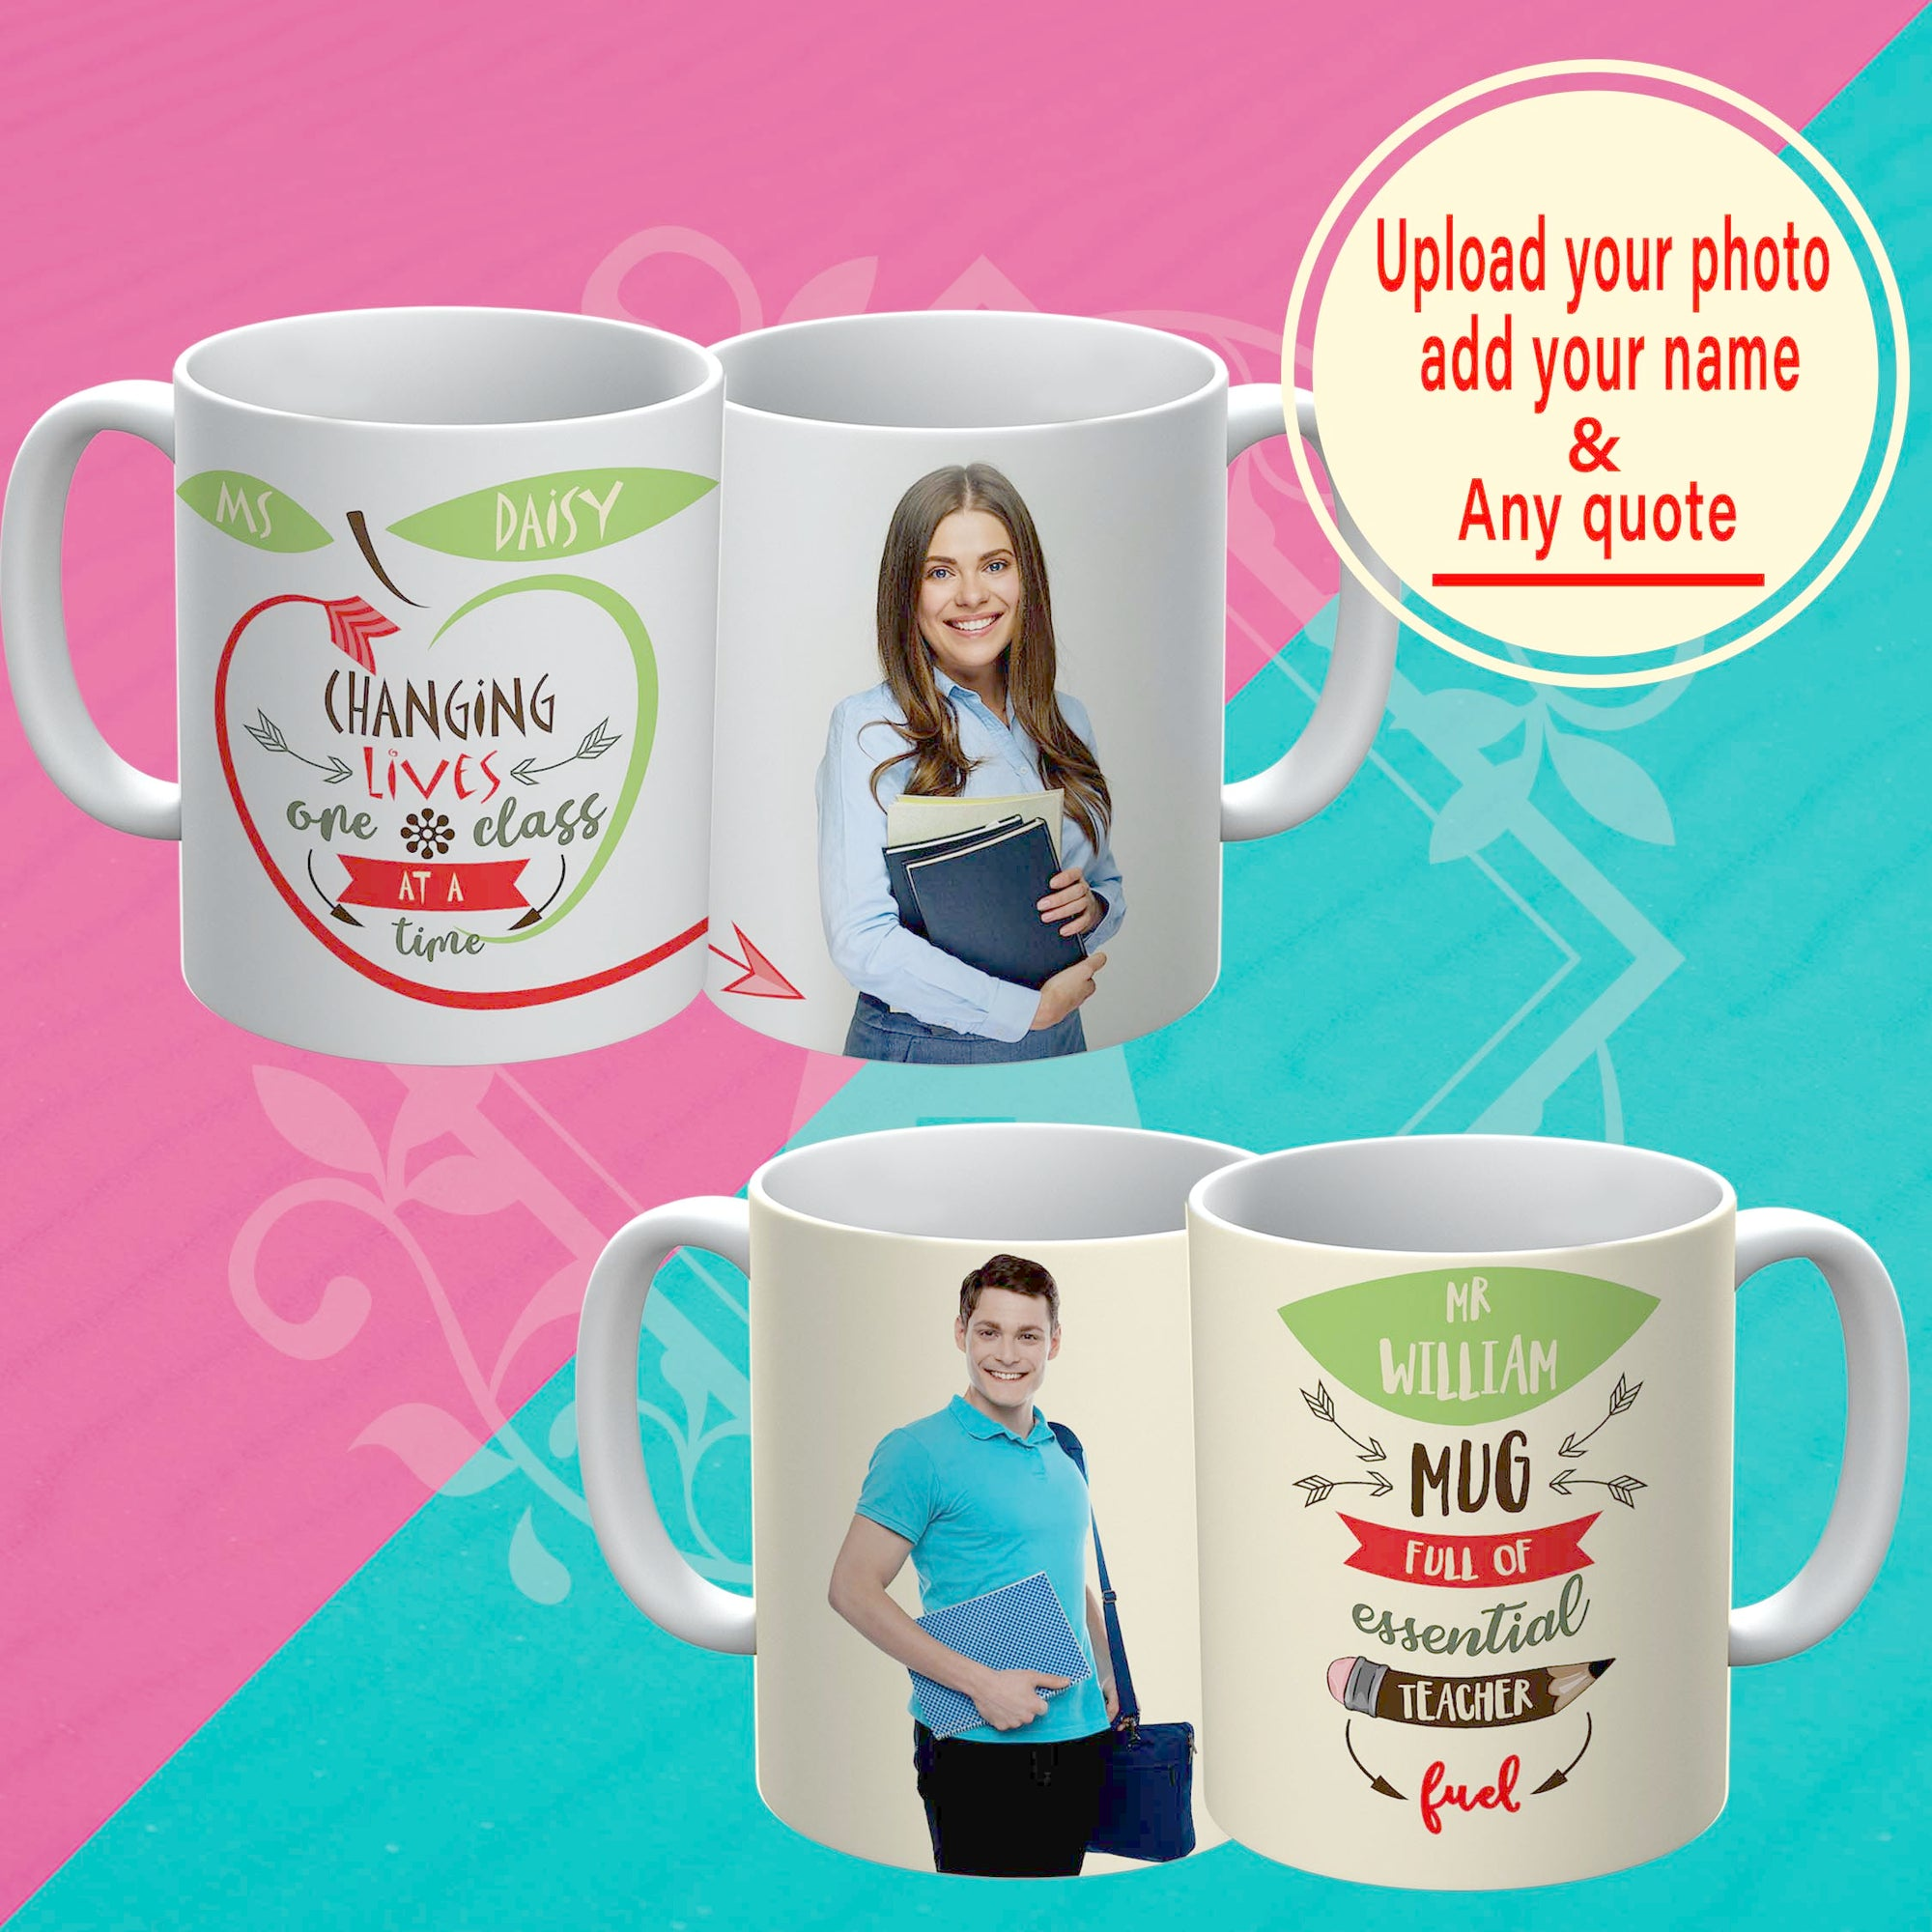 PERSONALIZED mug - upload your beloved teacher & favorite quote